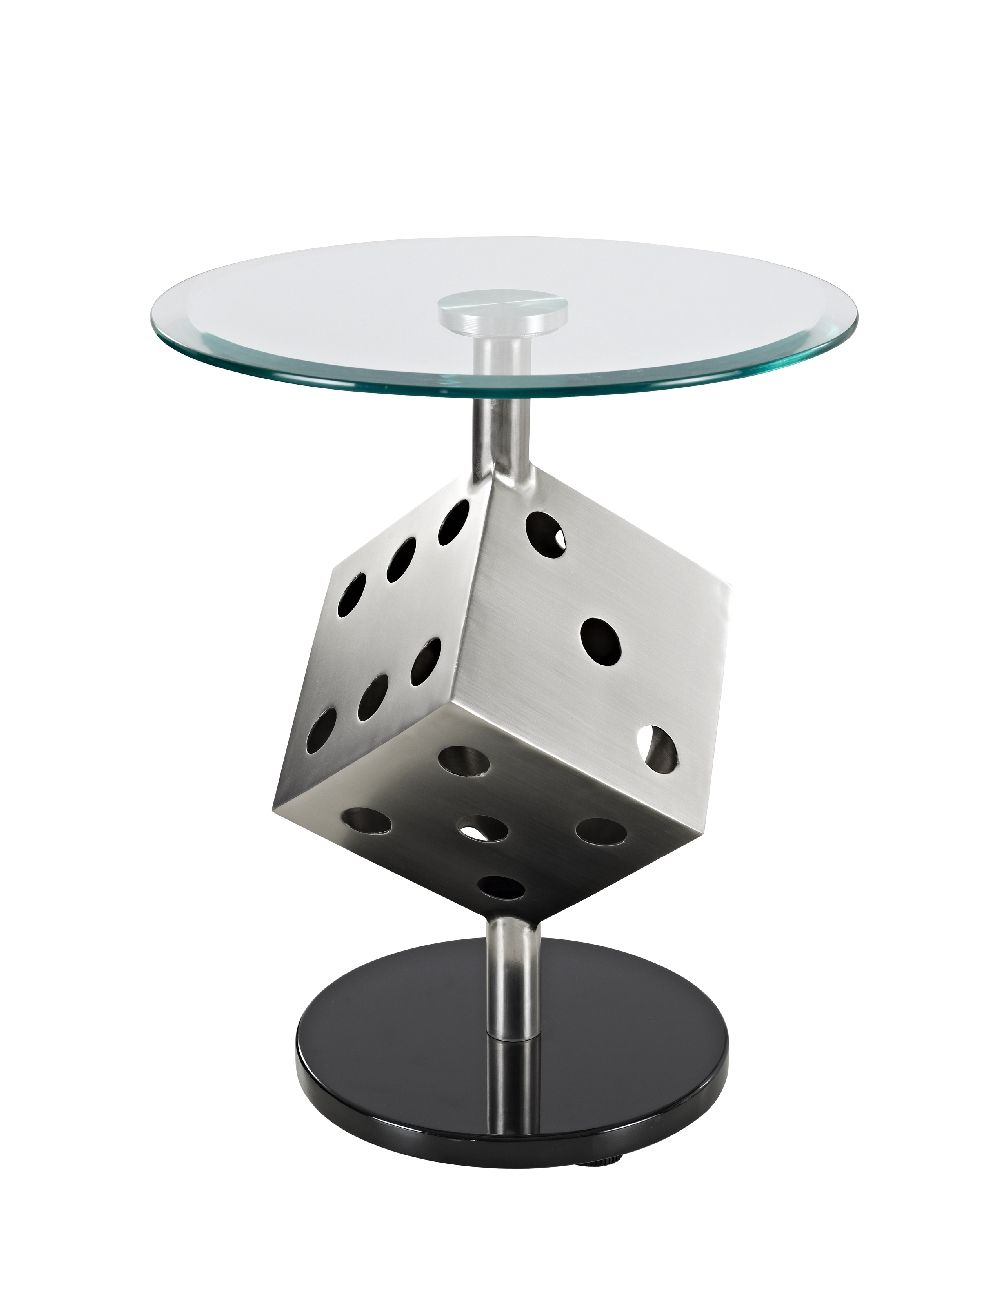 powell snake eyes dice metal glass accent table home decoration round wicker small sofa lamps leather chairs with arms marble living room target cabinet old antique tables dorm